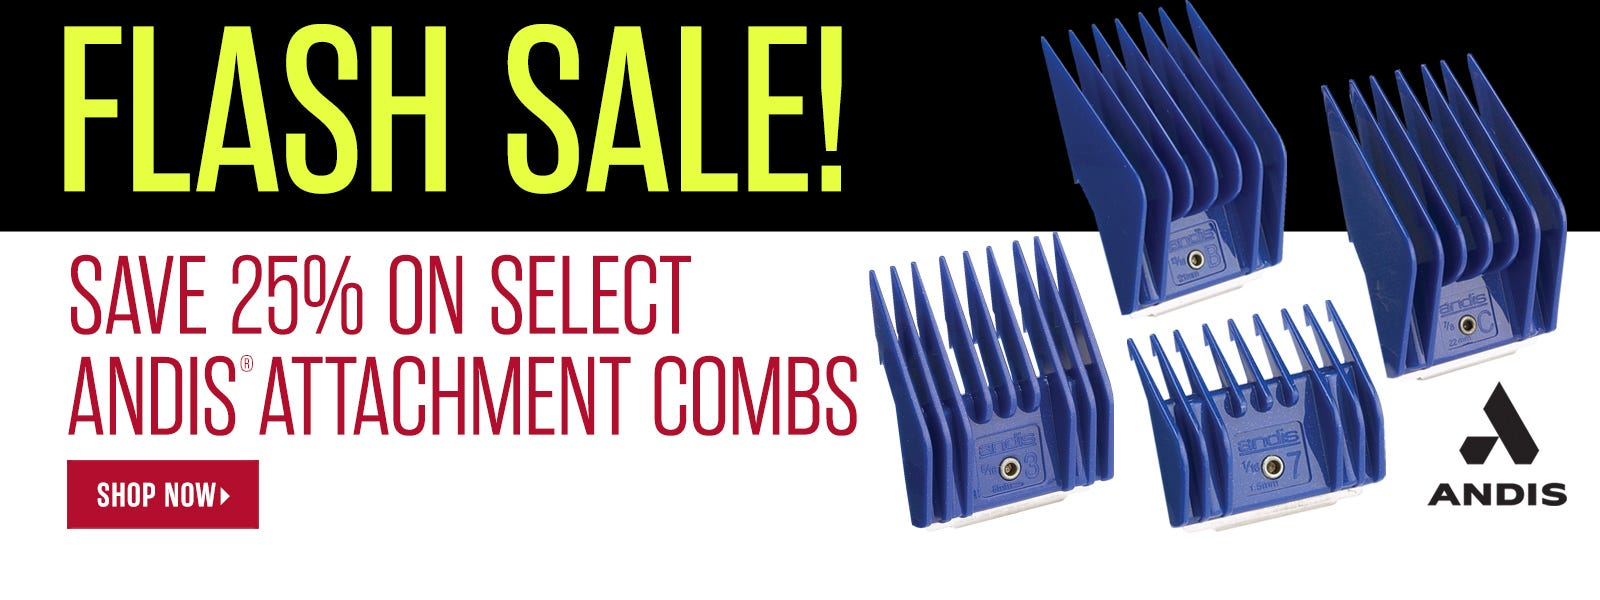 Andis Combs Flash Sale